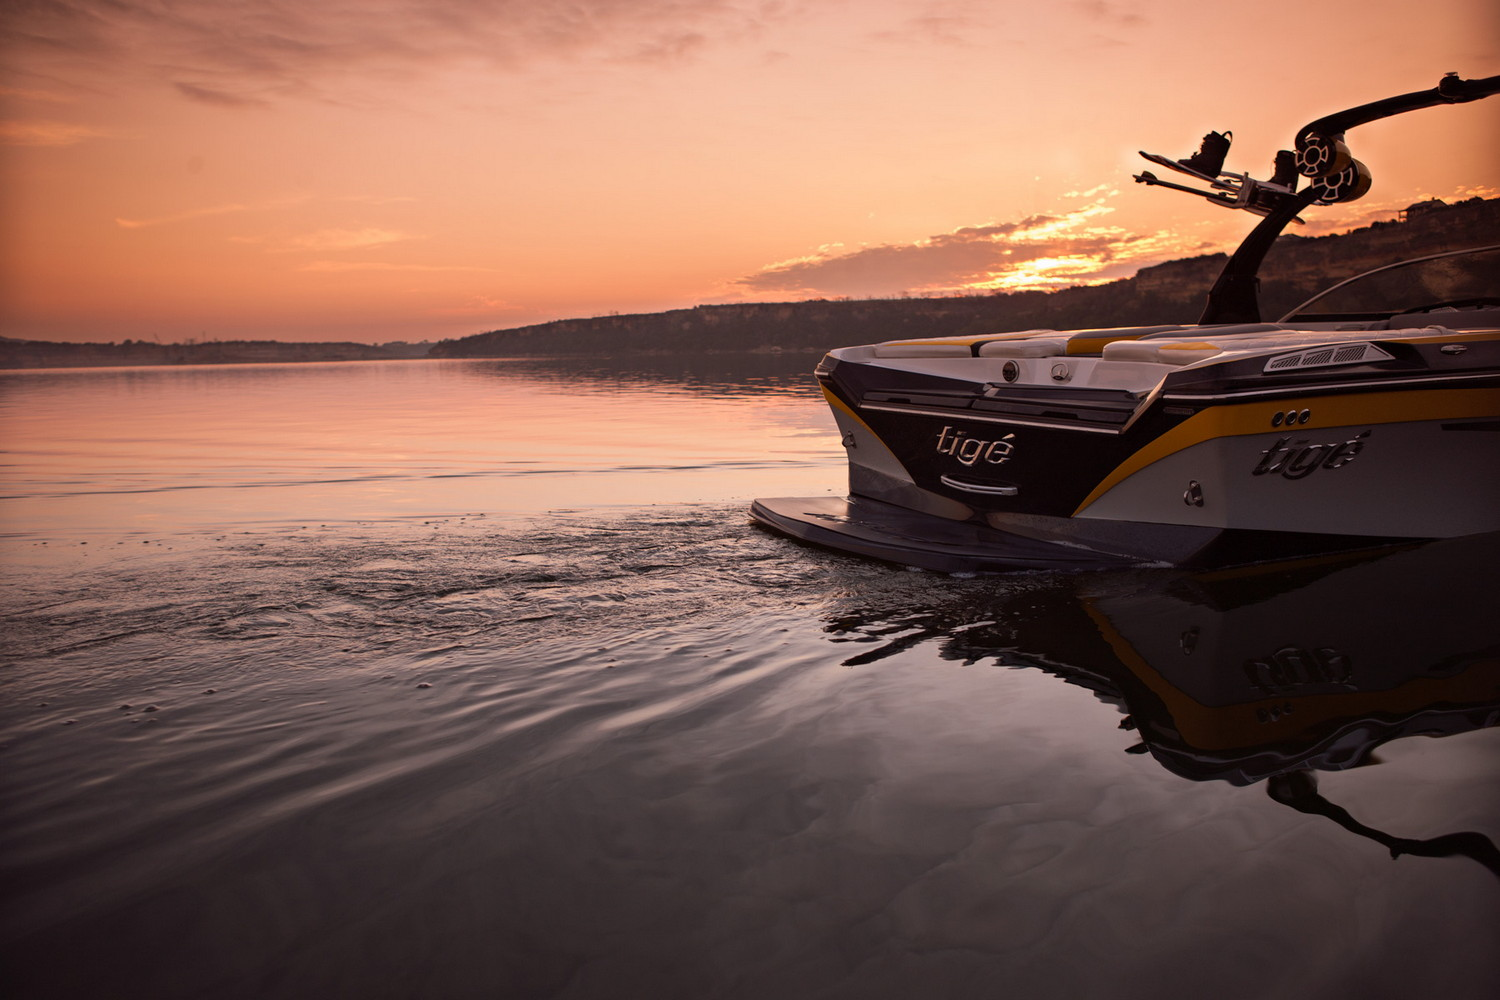 Image Gallery Of Tige Boat Wallpaper